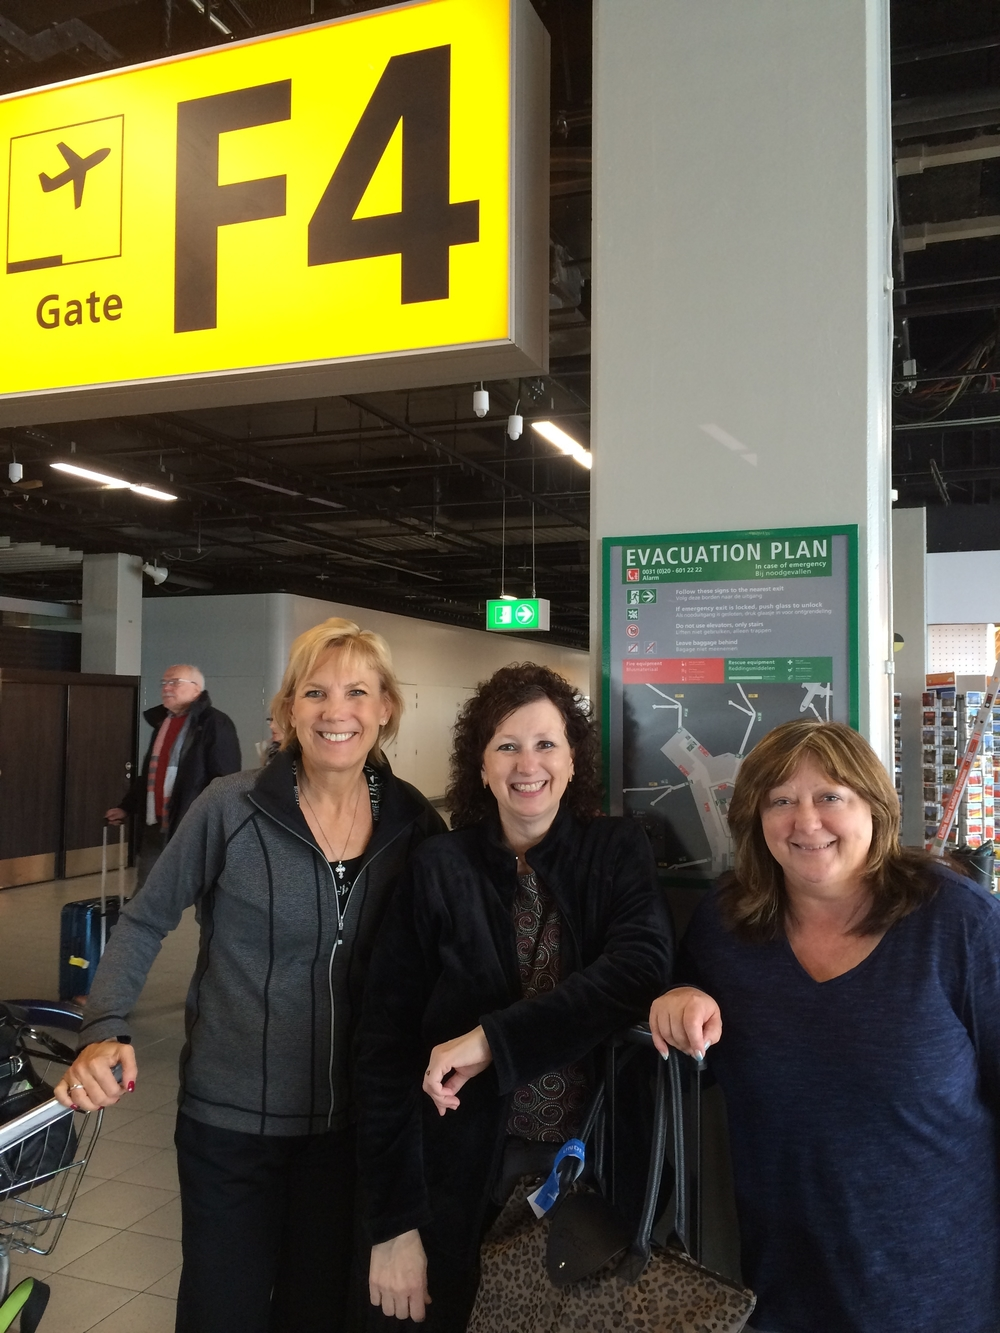 Chosen Women team (l to r) Sheryl, Marnie Swedberg (Warroad, MI) and Sharon Hurkens (Long Island, NY) meet in person for the first time in Amsterdam at the boarding gate to Nairobi. It truly was the dream team!